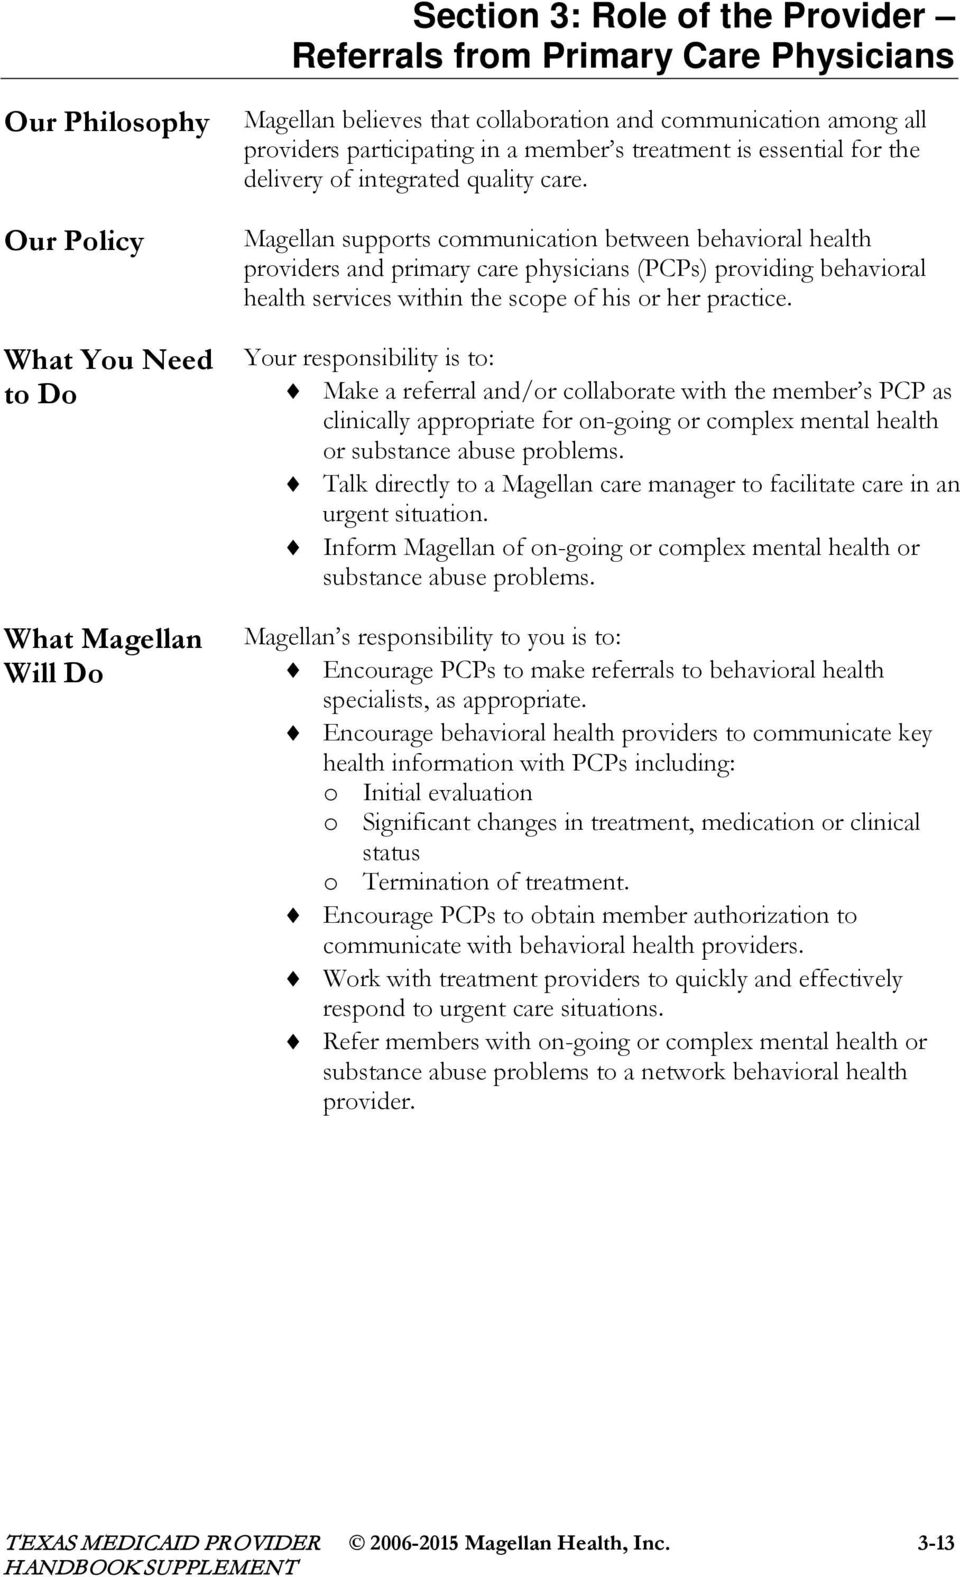 Magellan supports communication between behavioral health providers and primary care physicians (PCPs) providing behavioral health services within the scope of his or her practice.